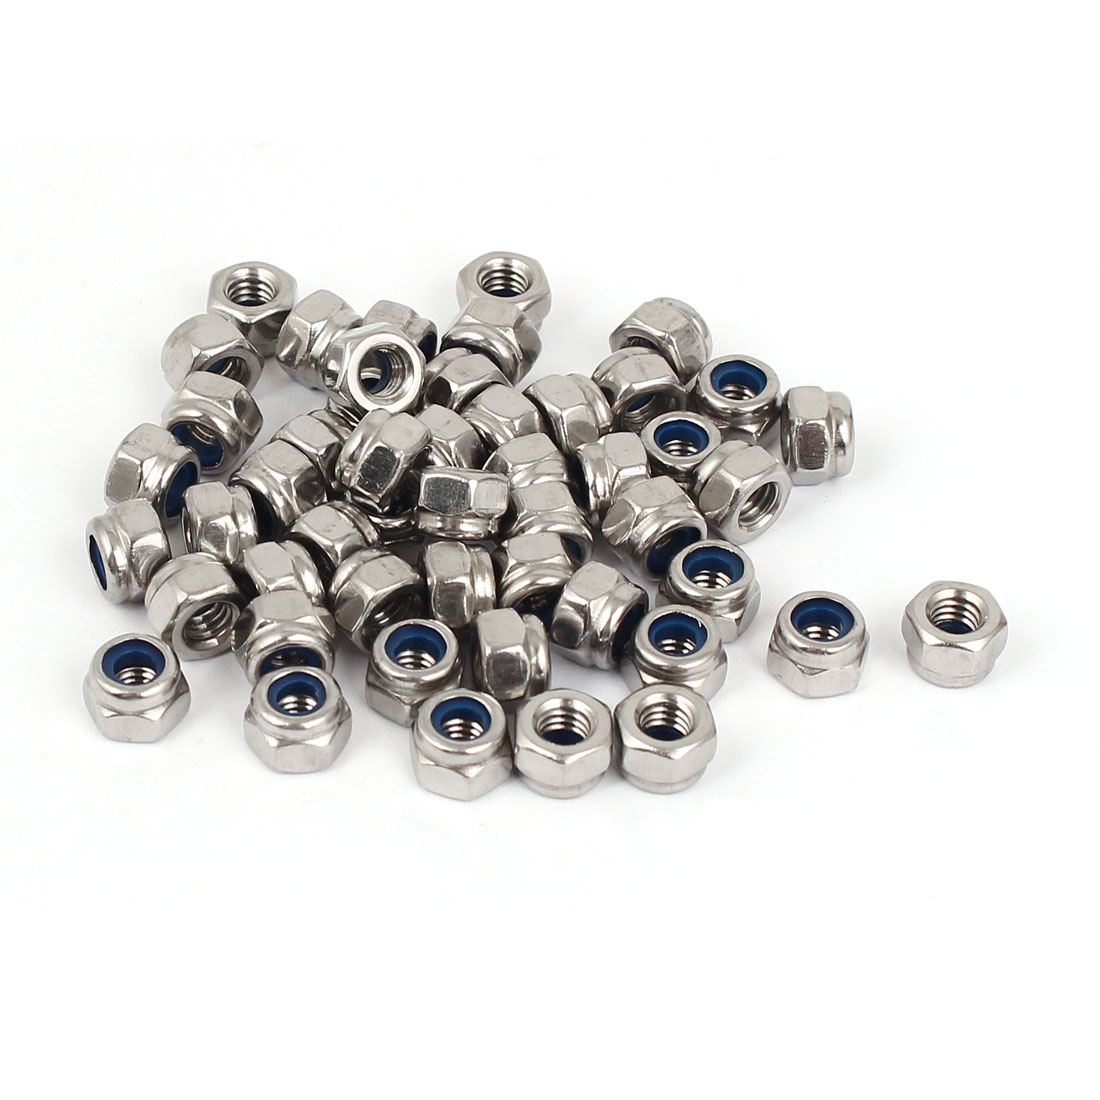 M4 304 Stainless Steel Nylock Self-Locking Nylon Insert Hex Lock Nuts 50pcs